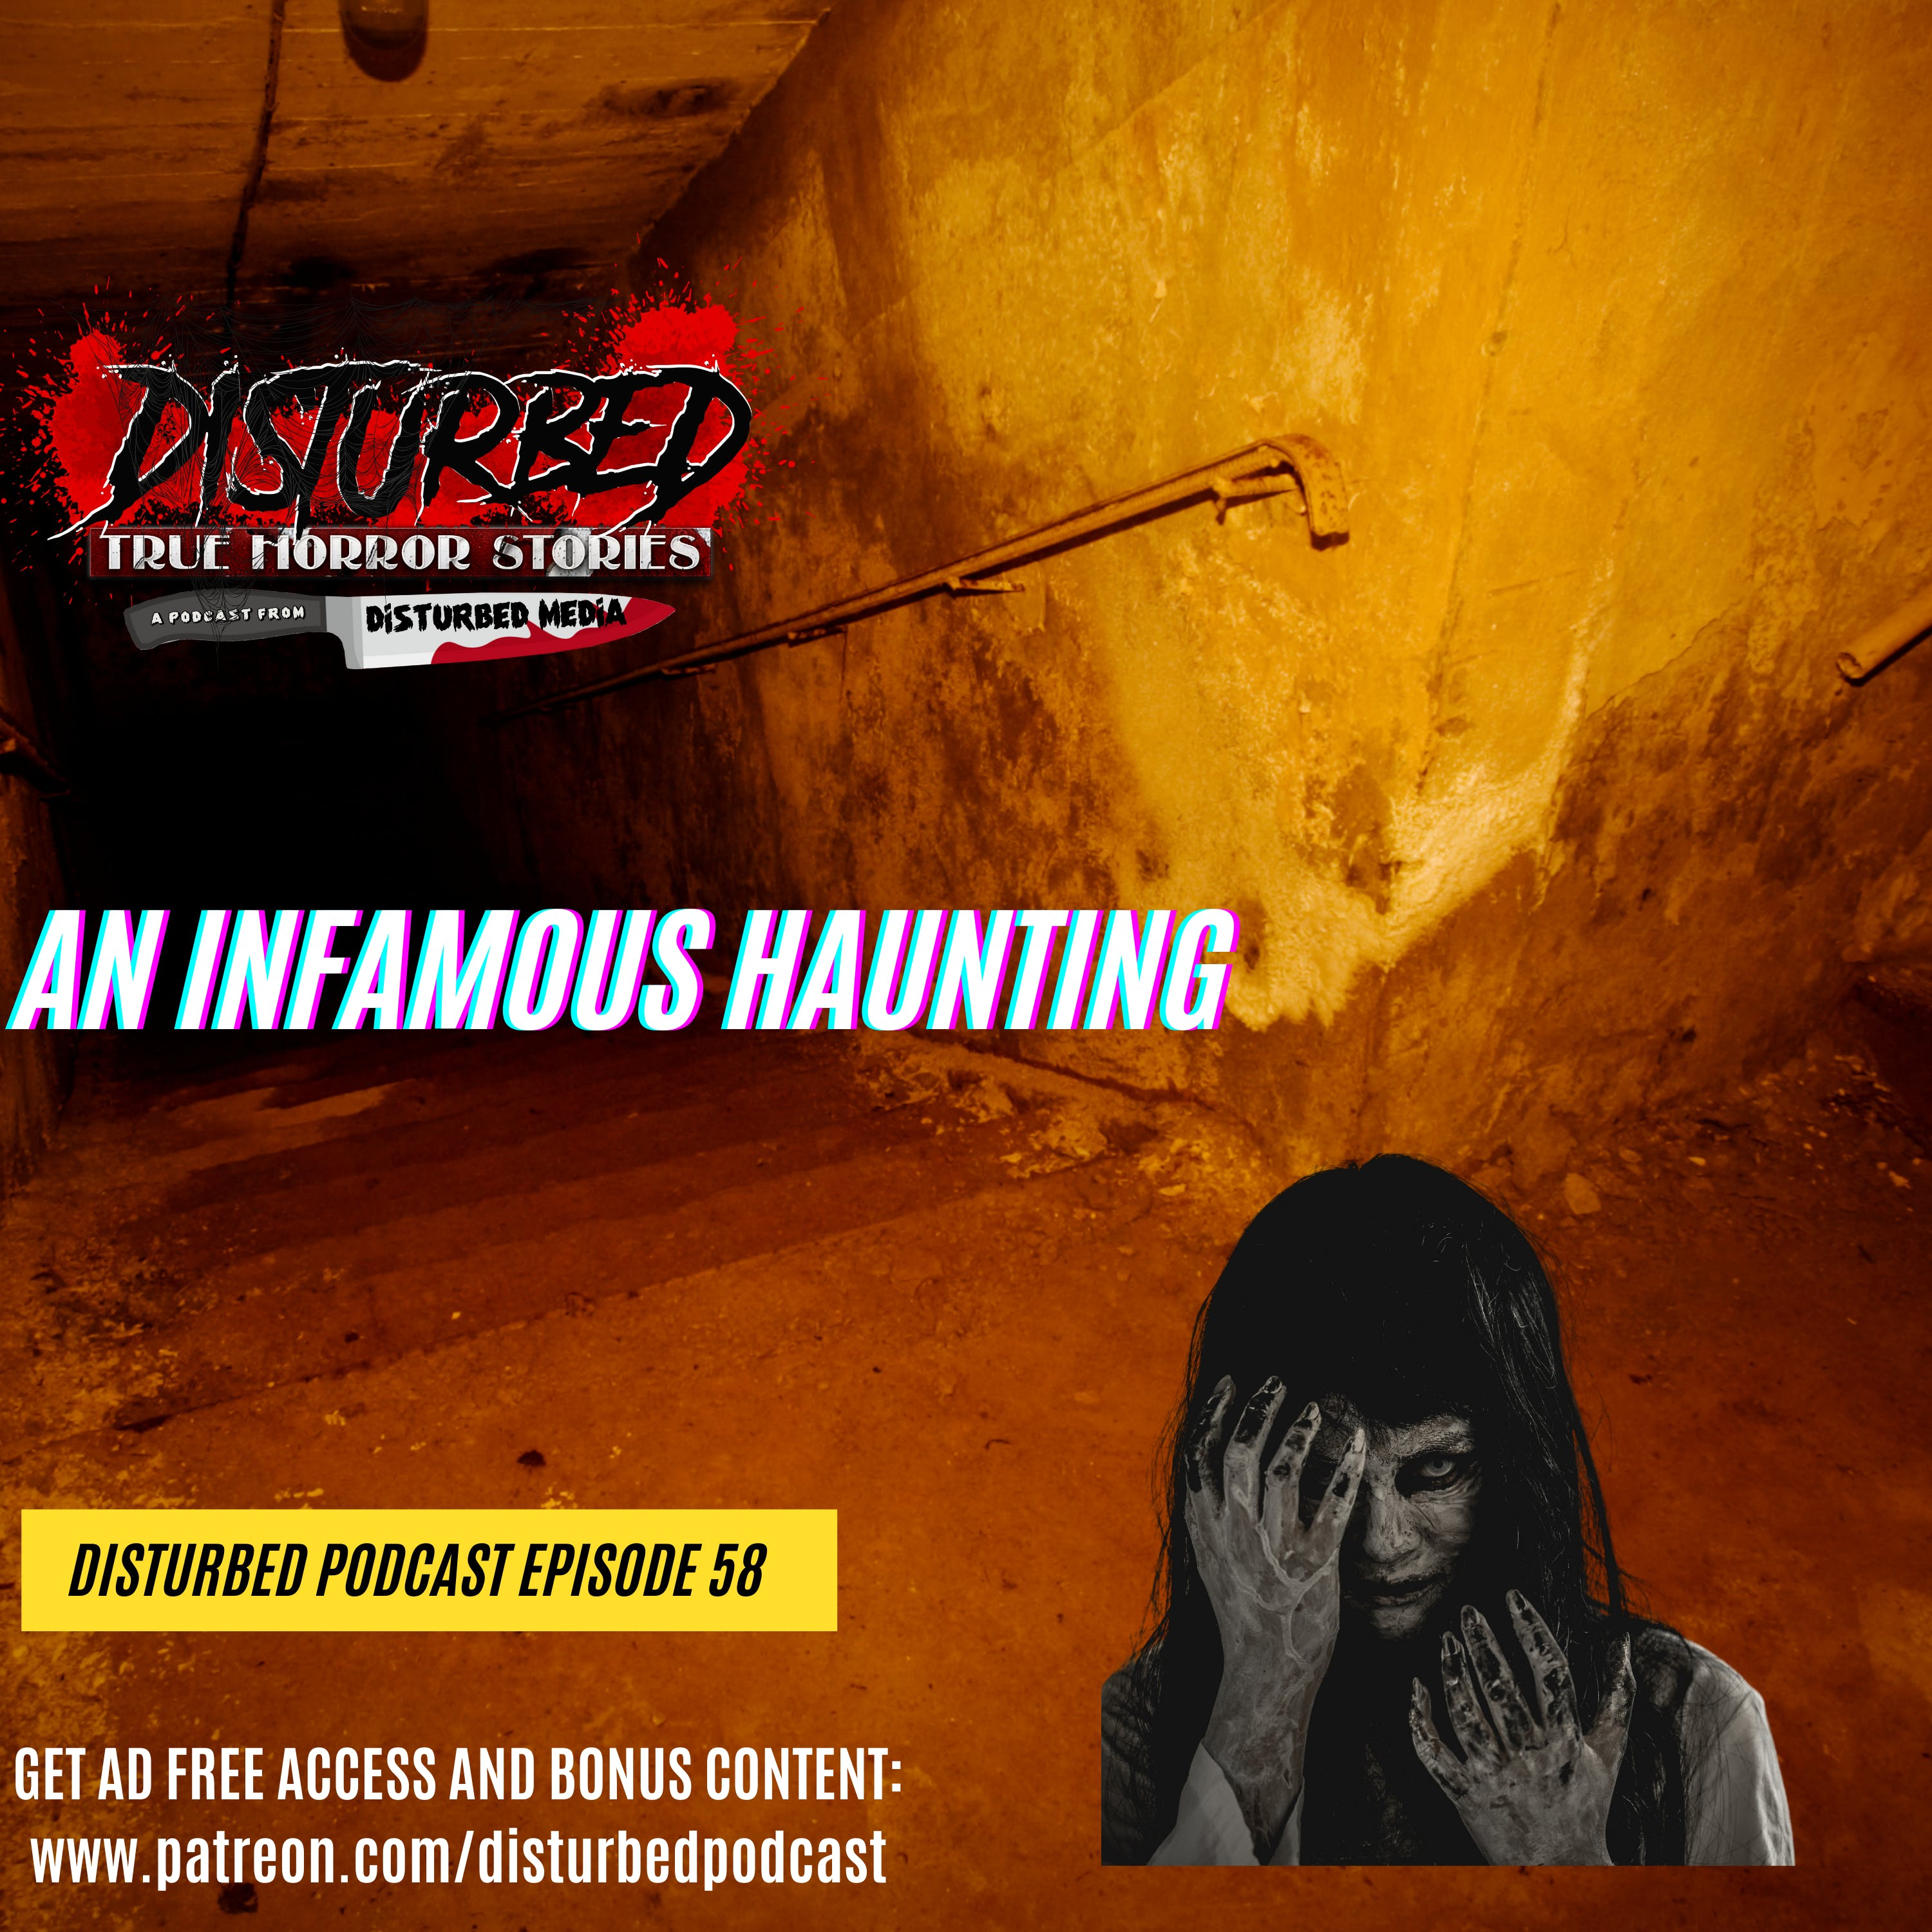 An Infamous Haunting